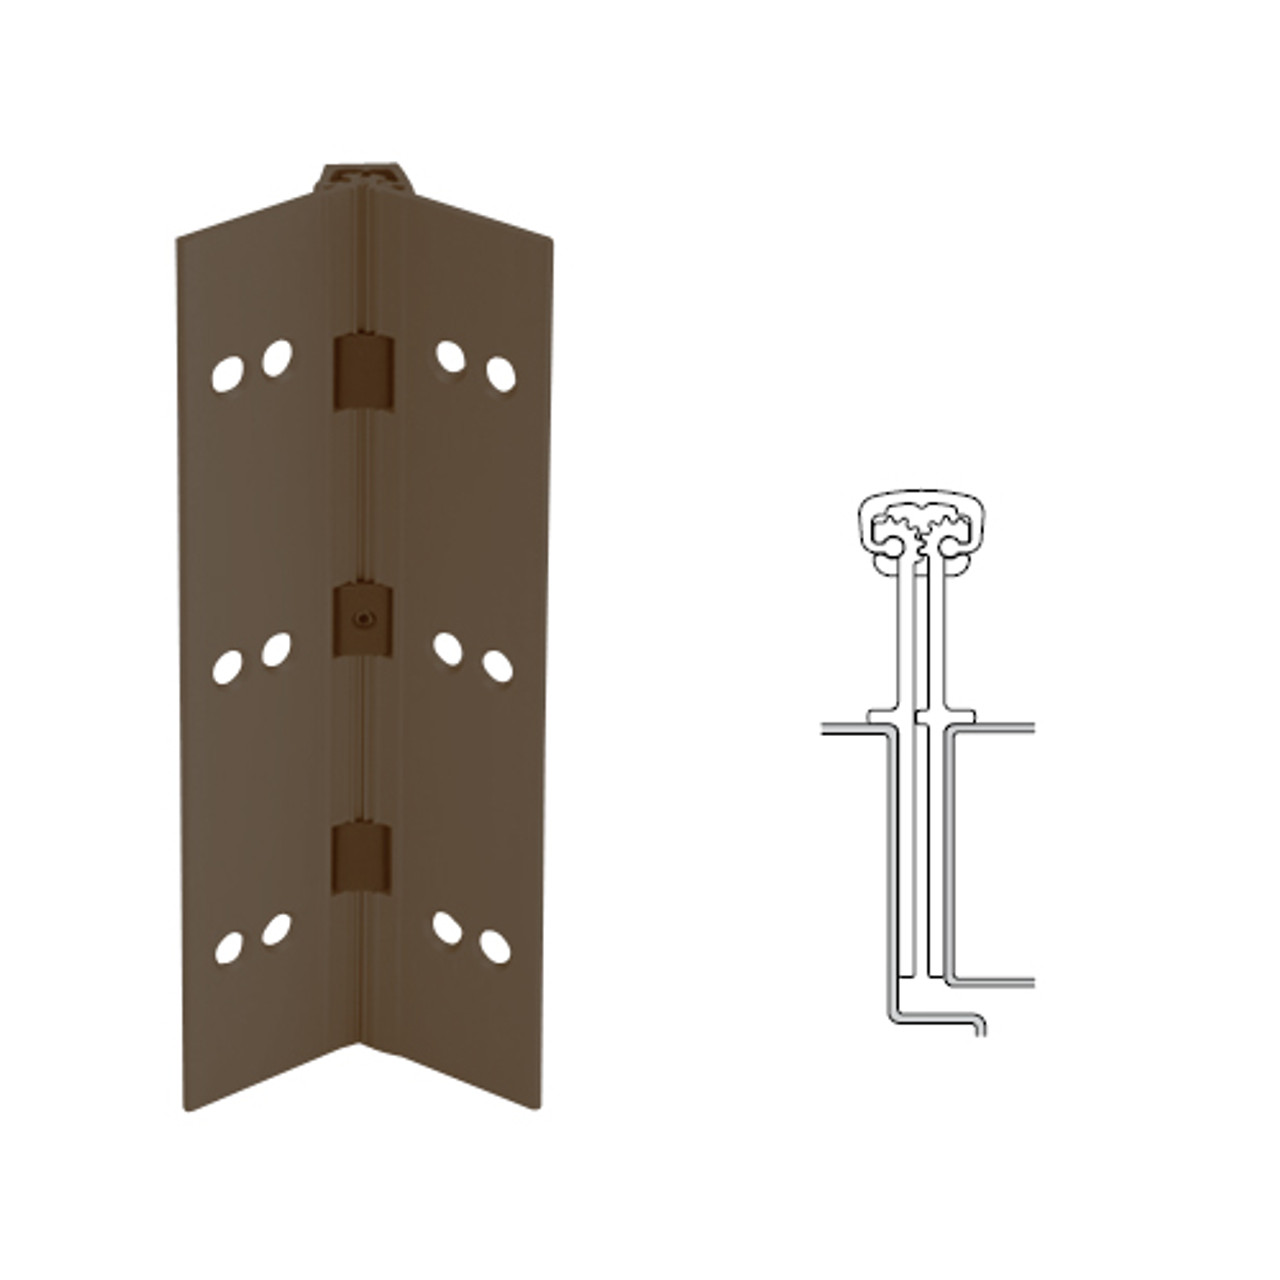 040XY-313AN-85-SECWDHM IVES Full Mortise Continuous Geared Hinges with Security Screws - Hex Pin Drive in Dark Bronze Anodized